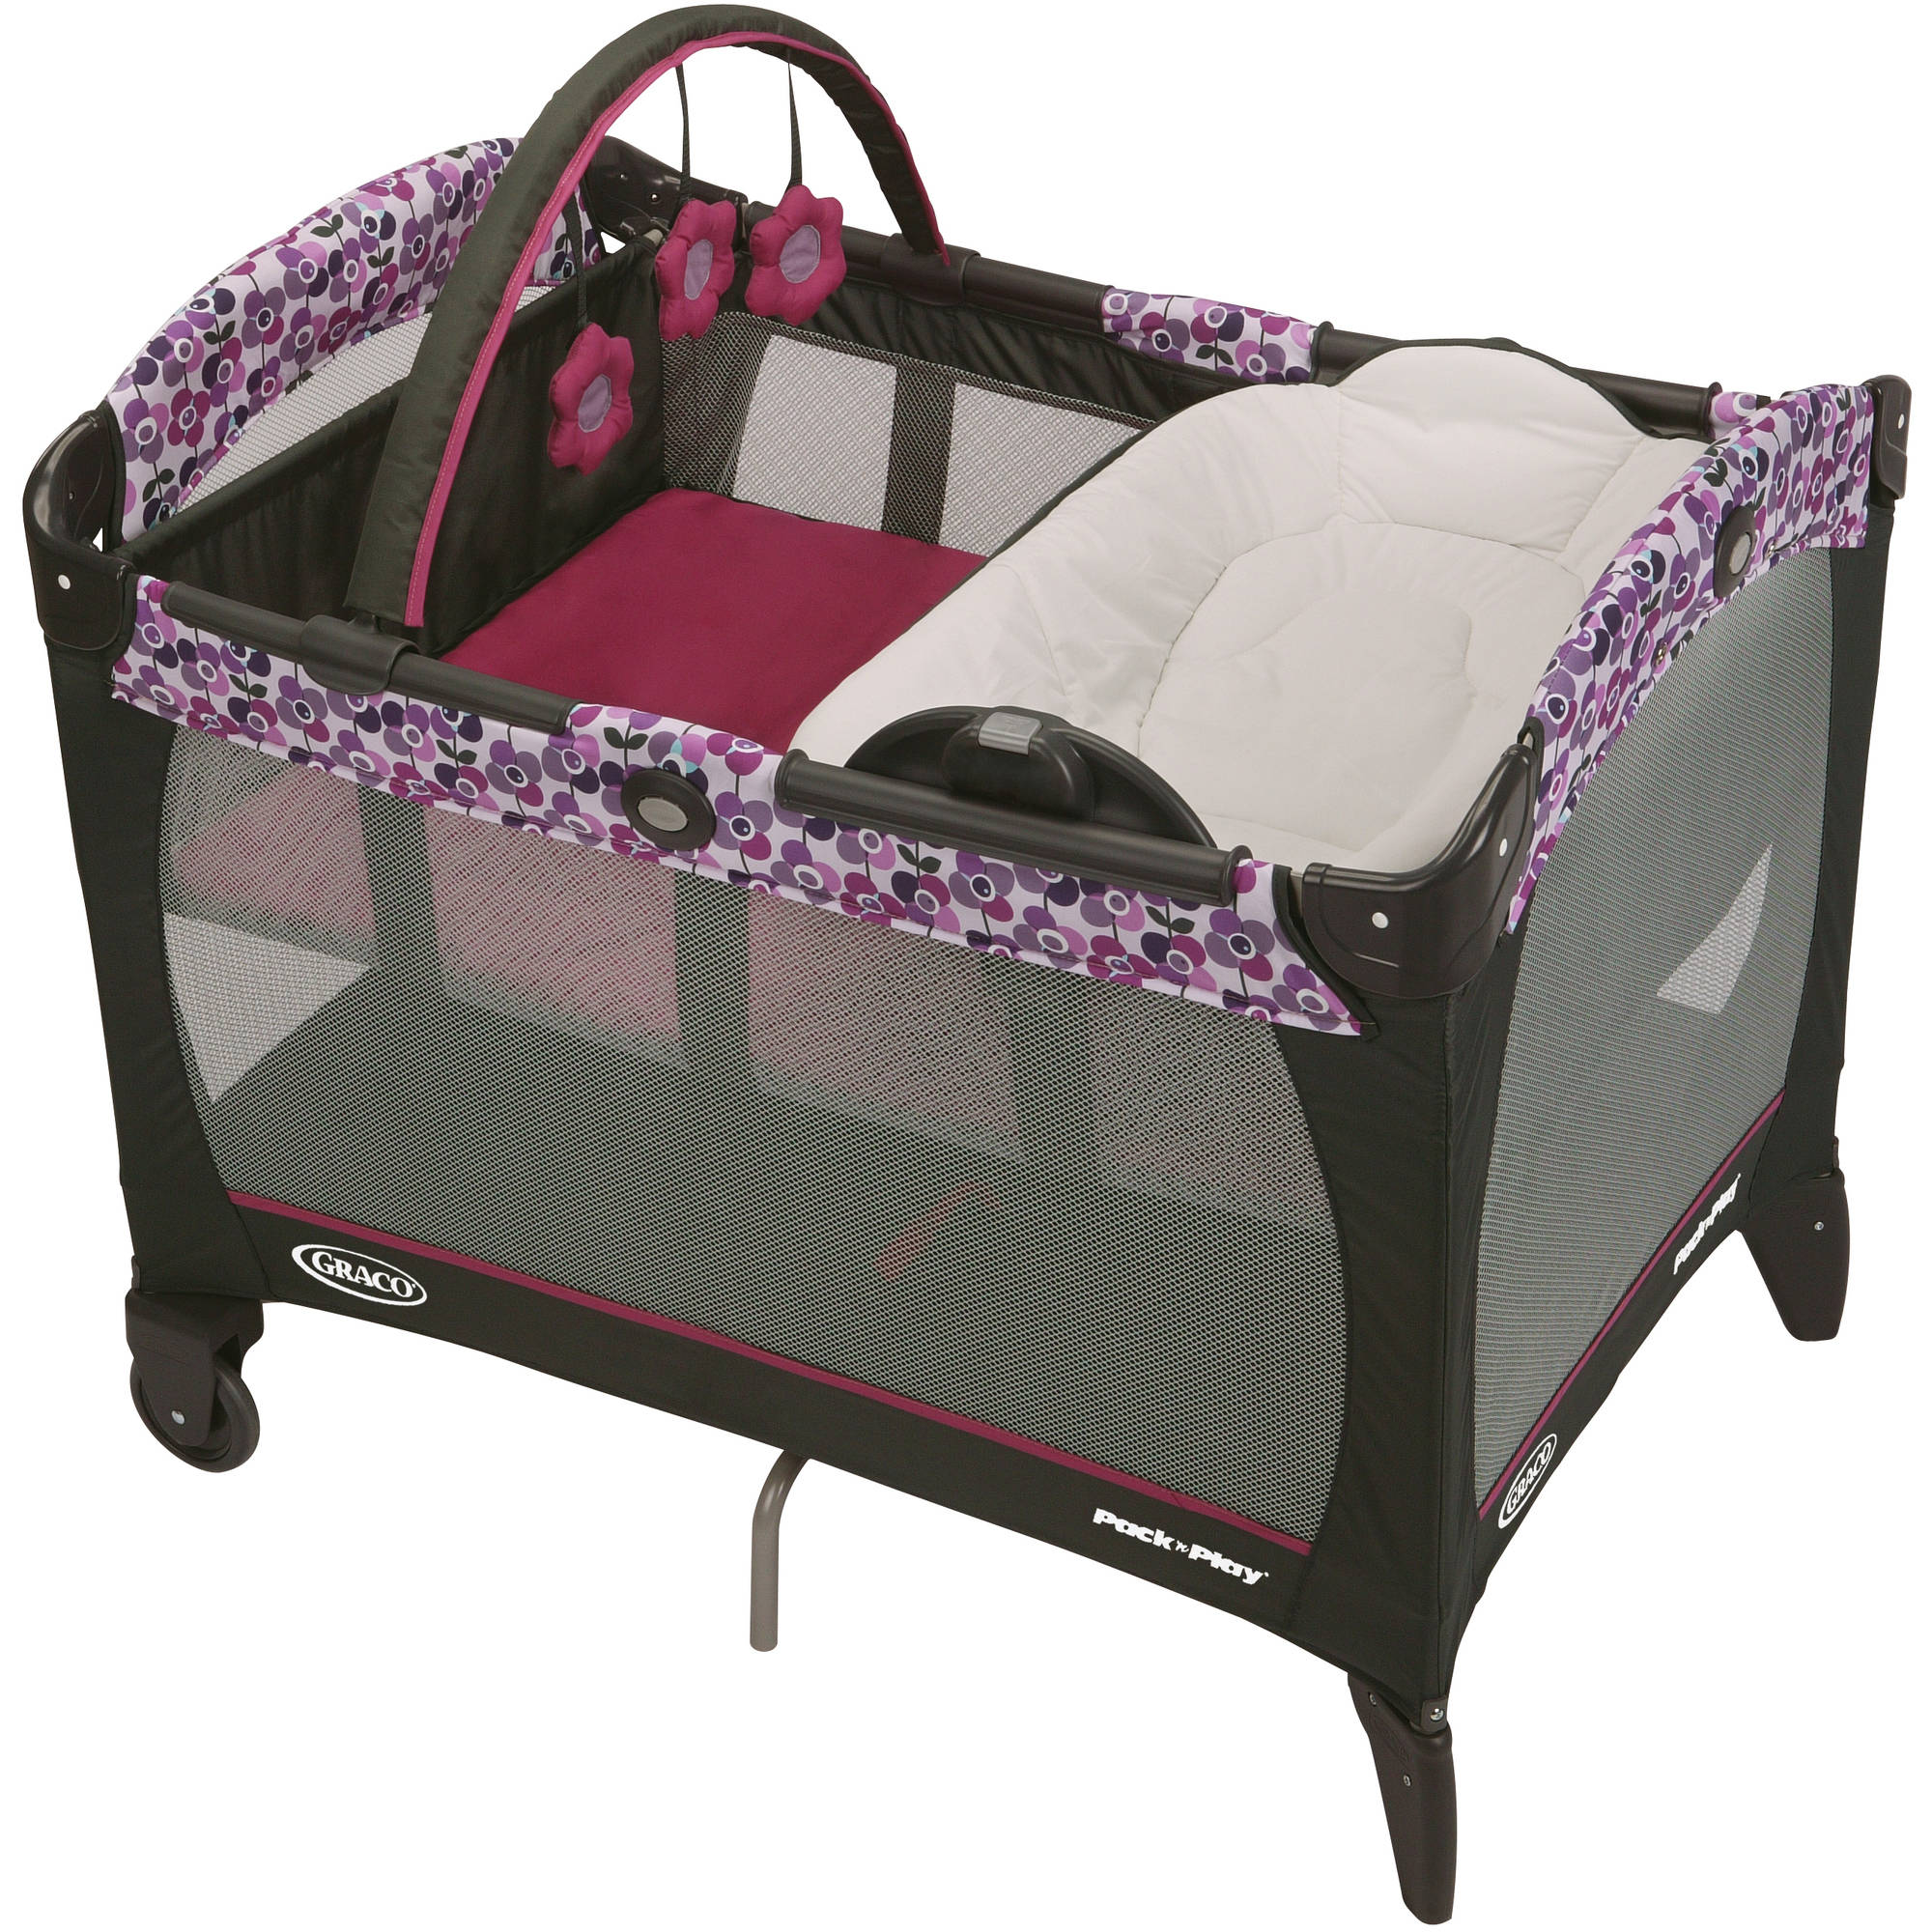 Graco Pack 'n Play Playard with Reversible Napper and Changer, Pammie